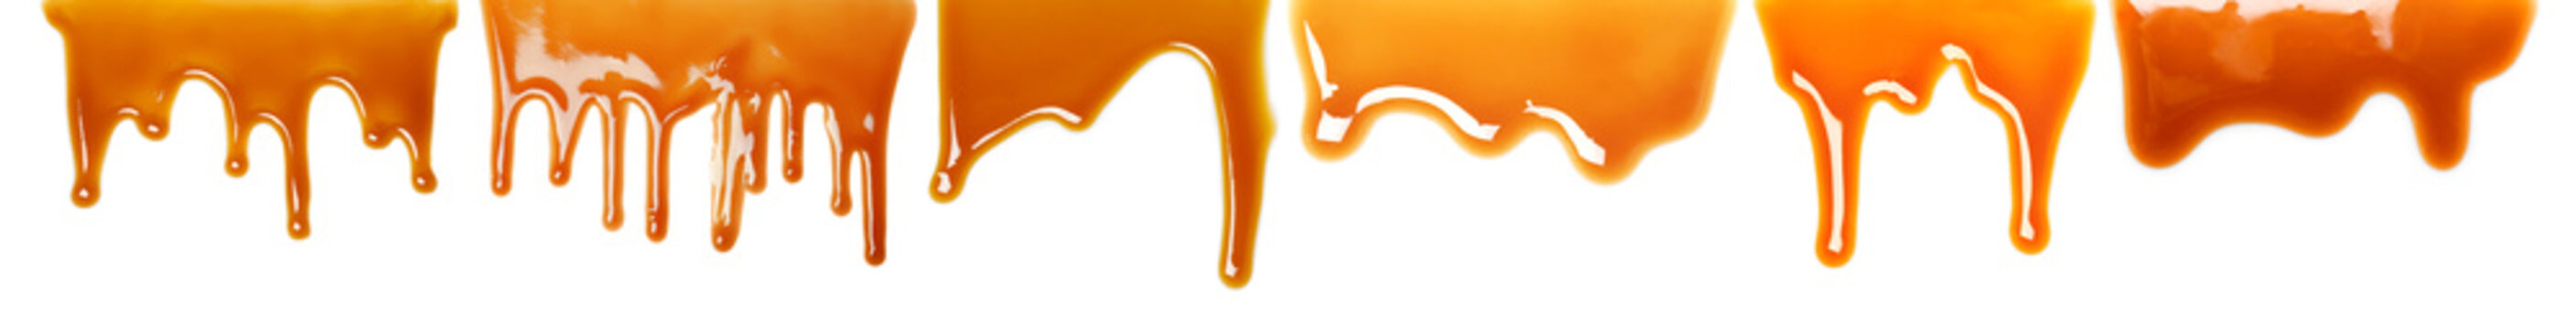 Set with delicious caramel sauce on white background